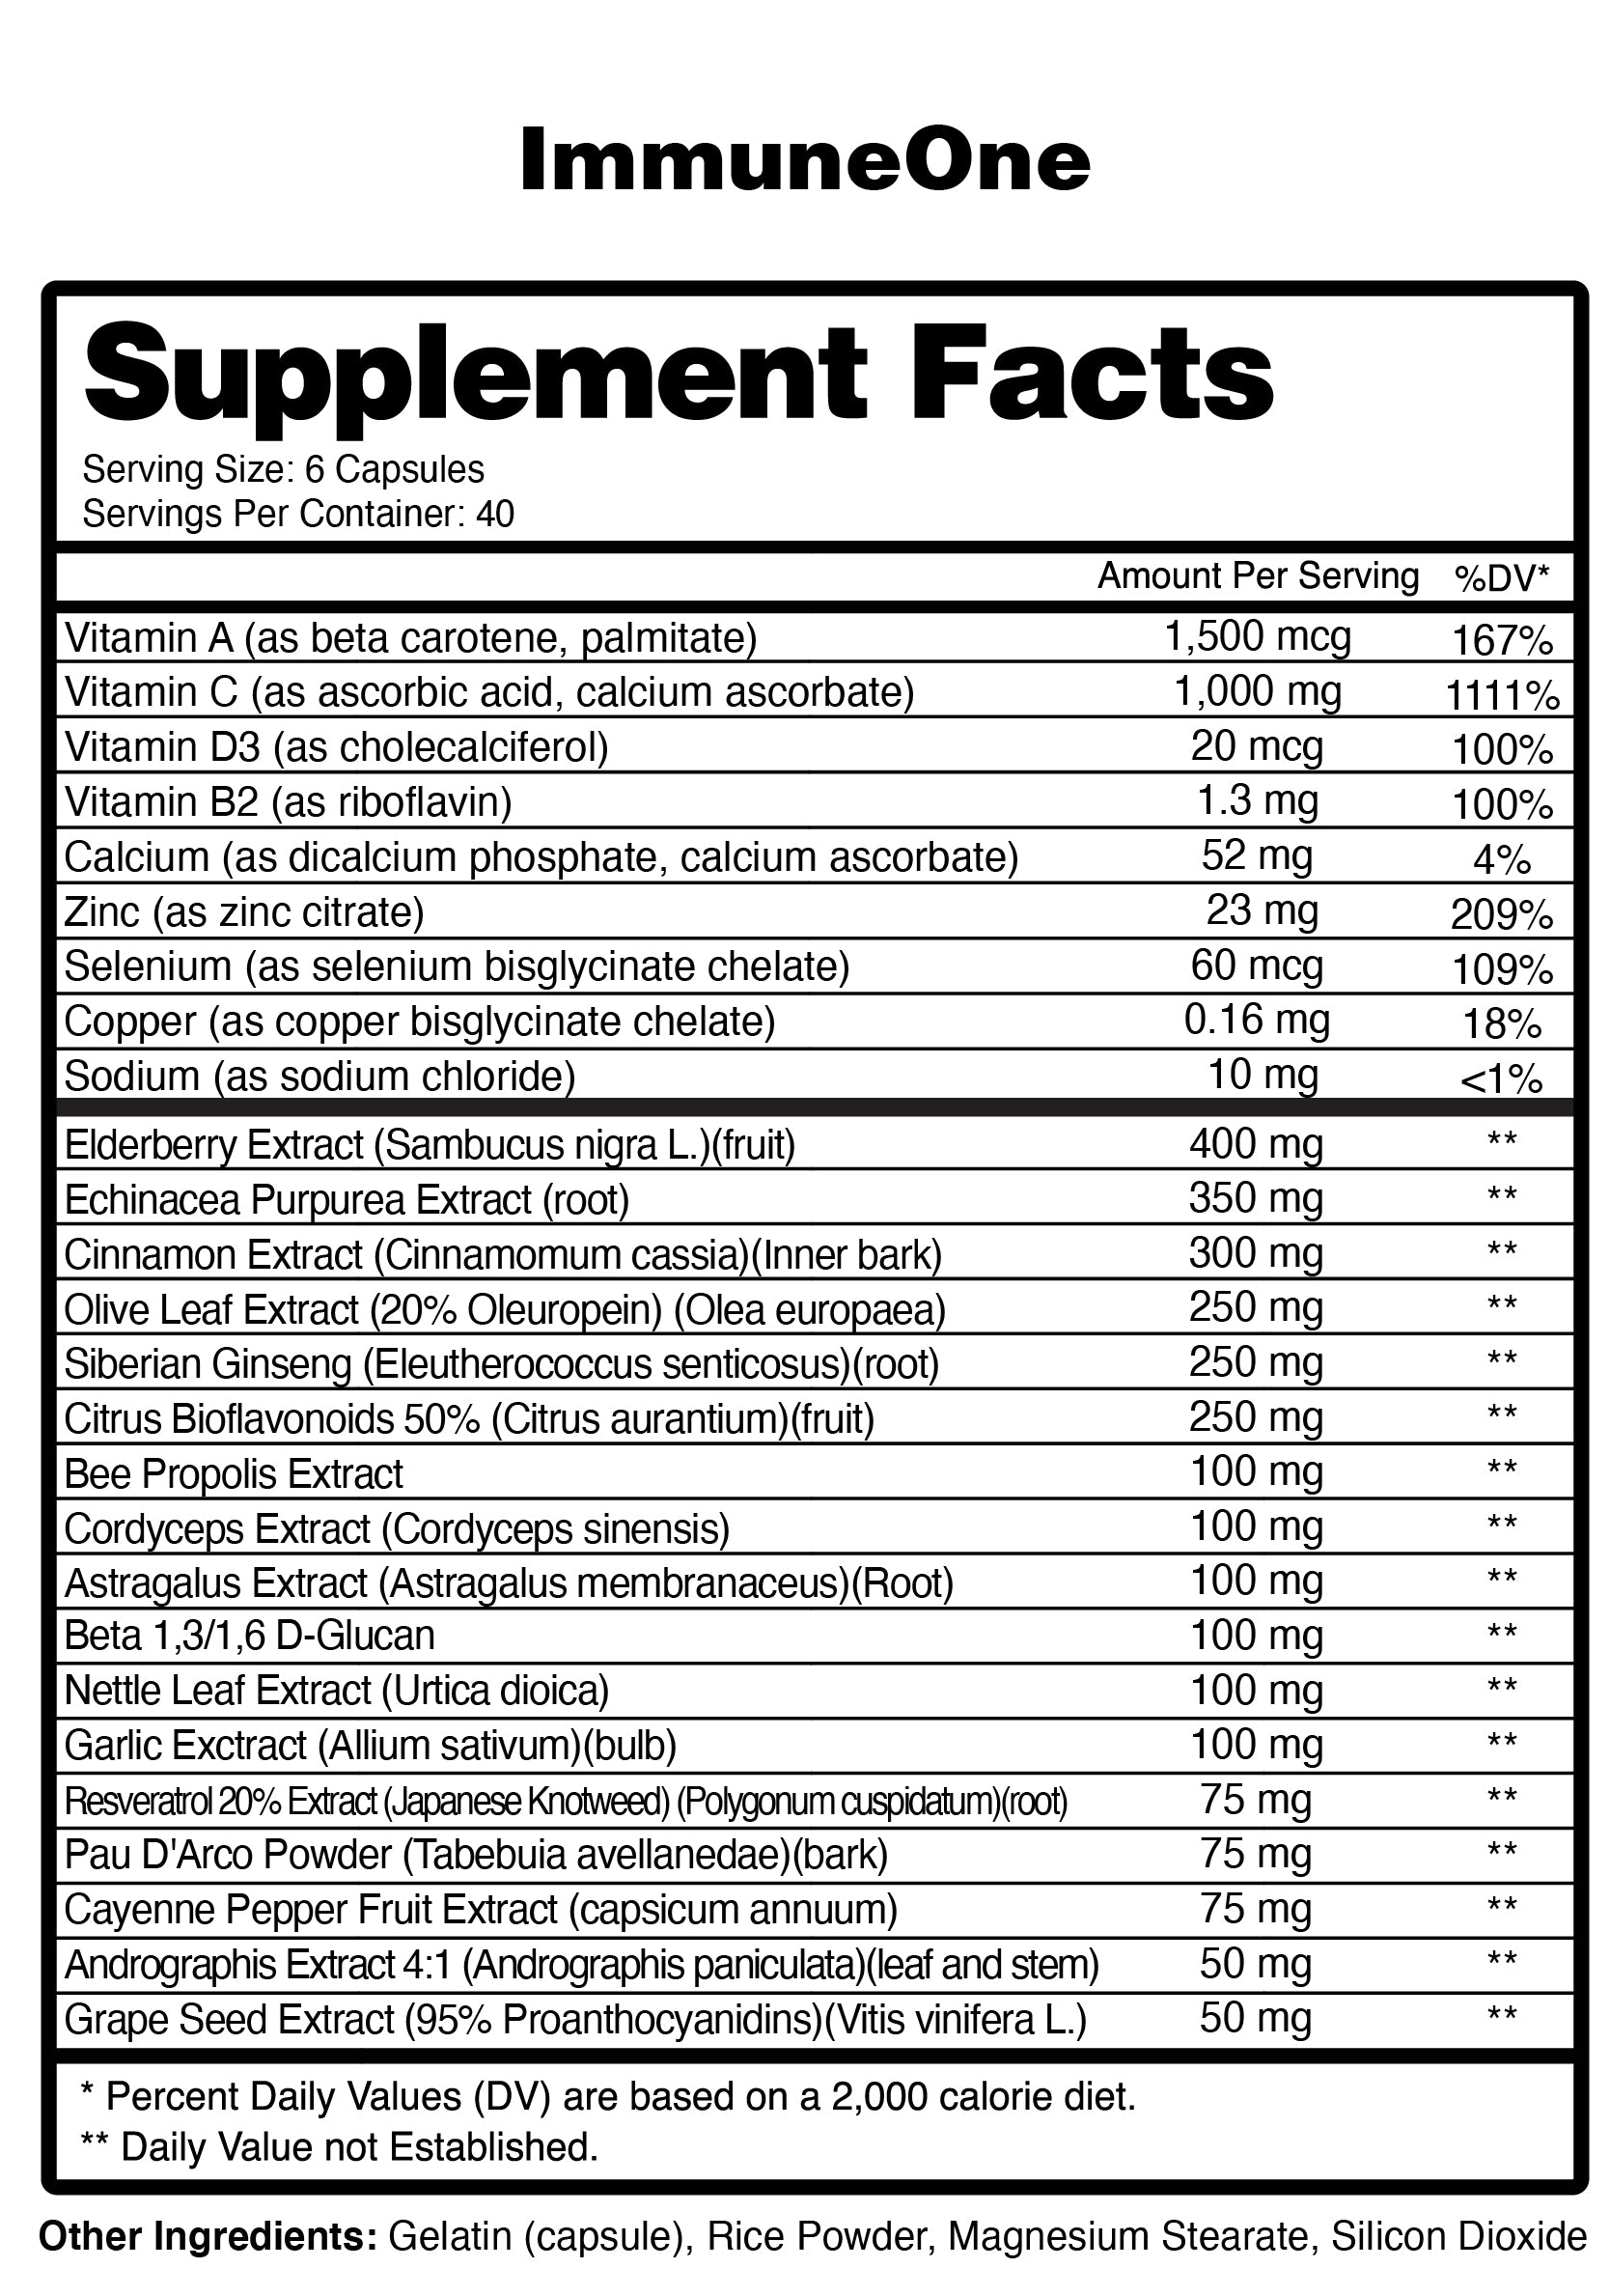 ImmnueOne Supplement Facts